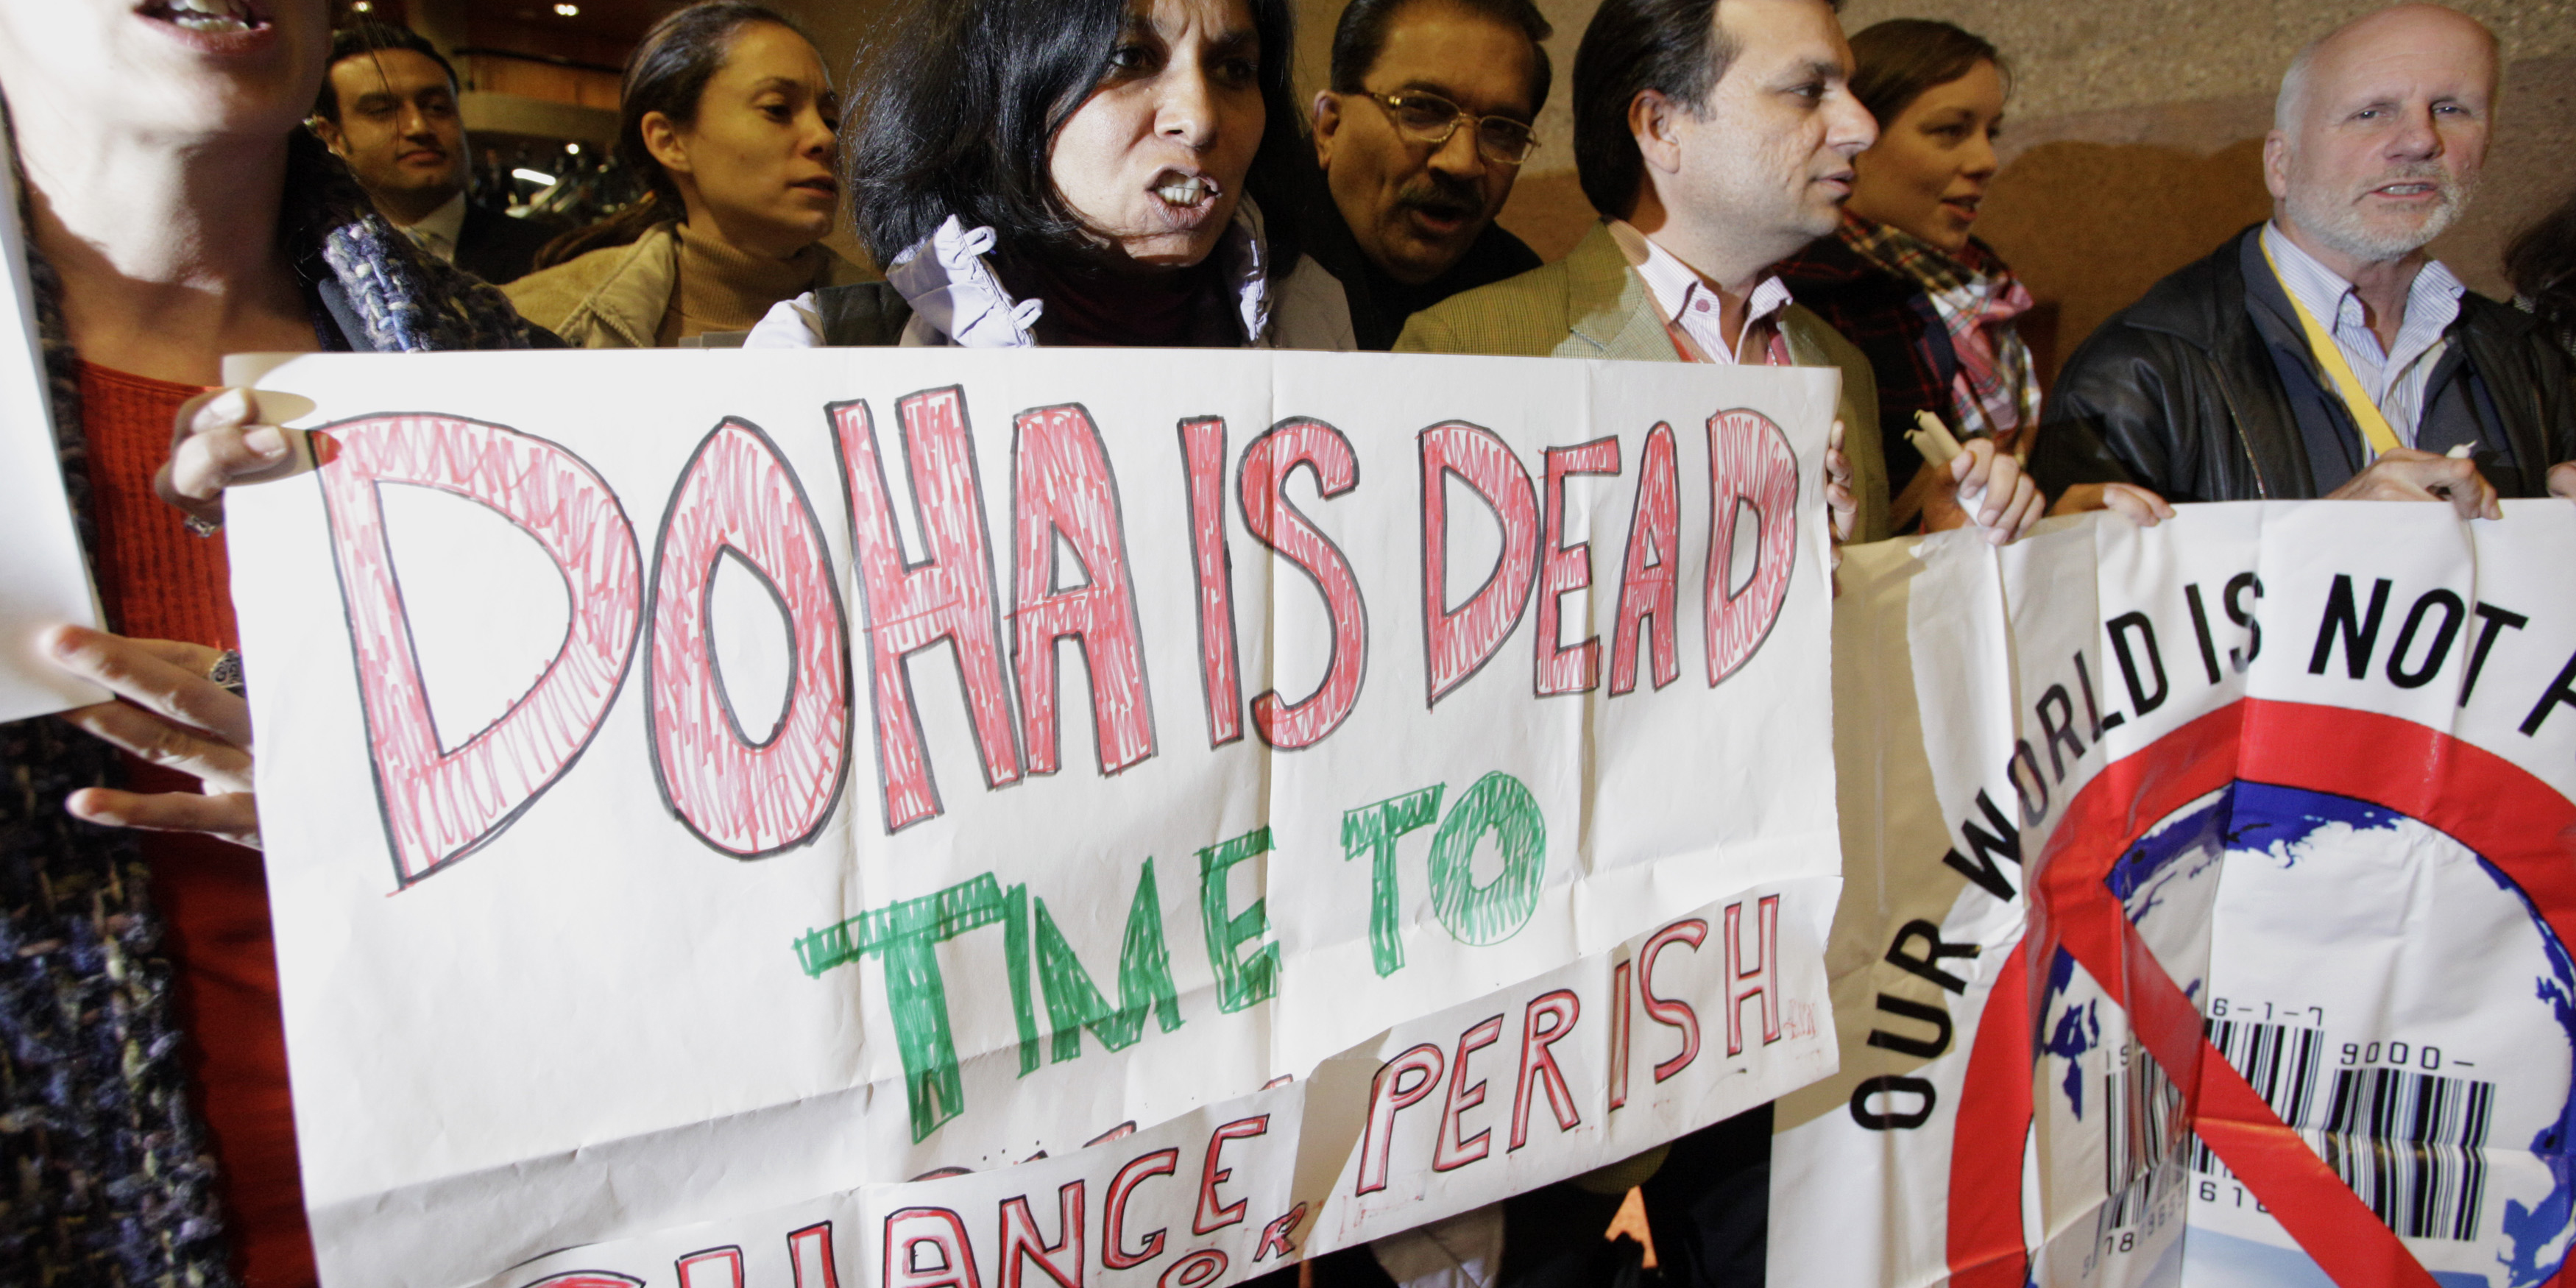 Activists of various nongovernmental organizations demonstrate against the Doha Round of global trade talks before the closing ceremony of the seventh WTO ministerial meeting in Geneva, on December 2, 2009.